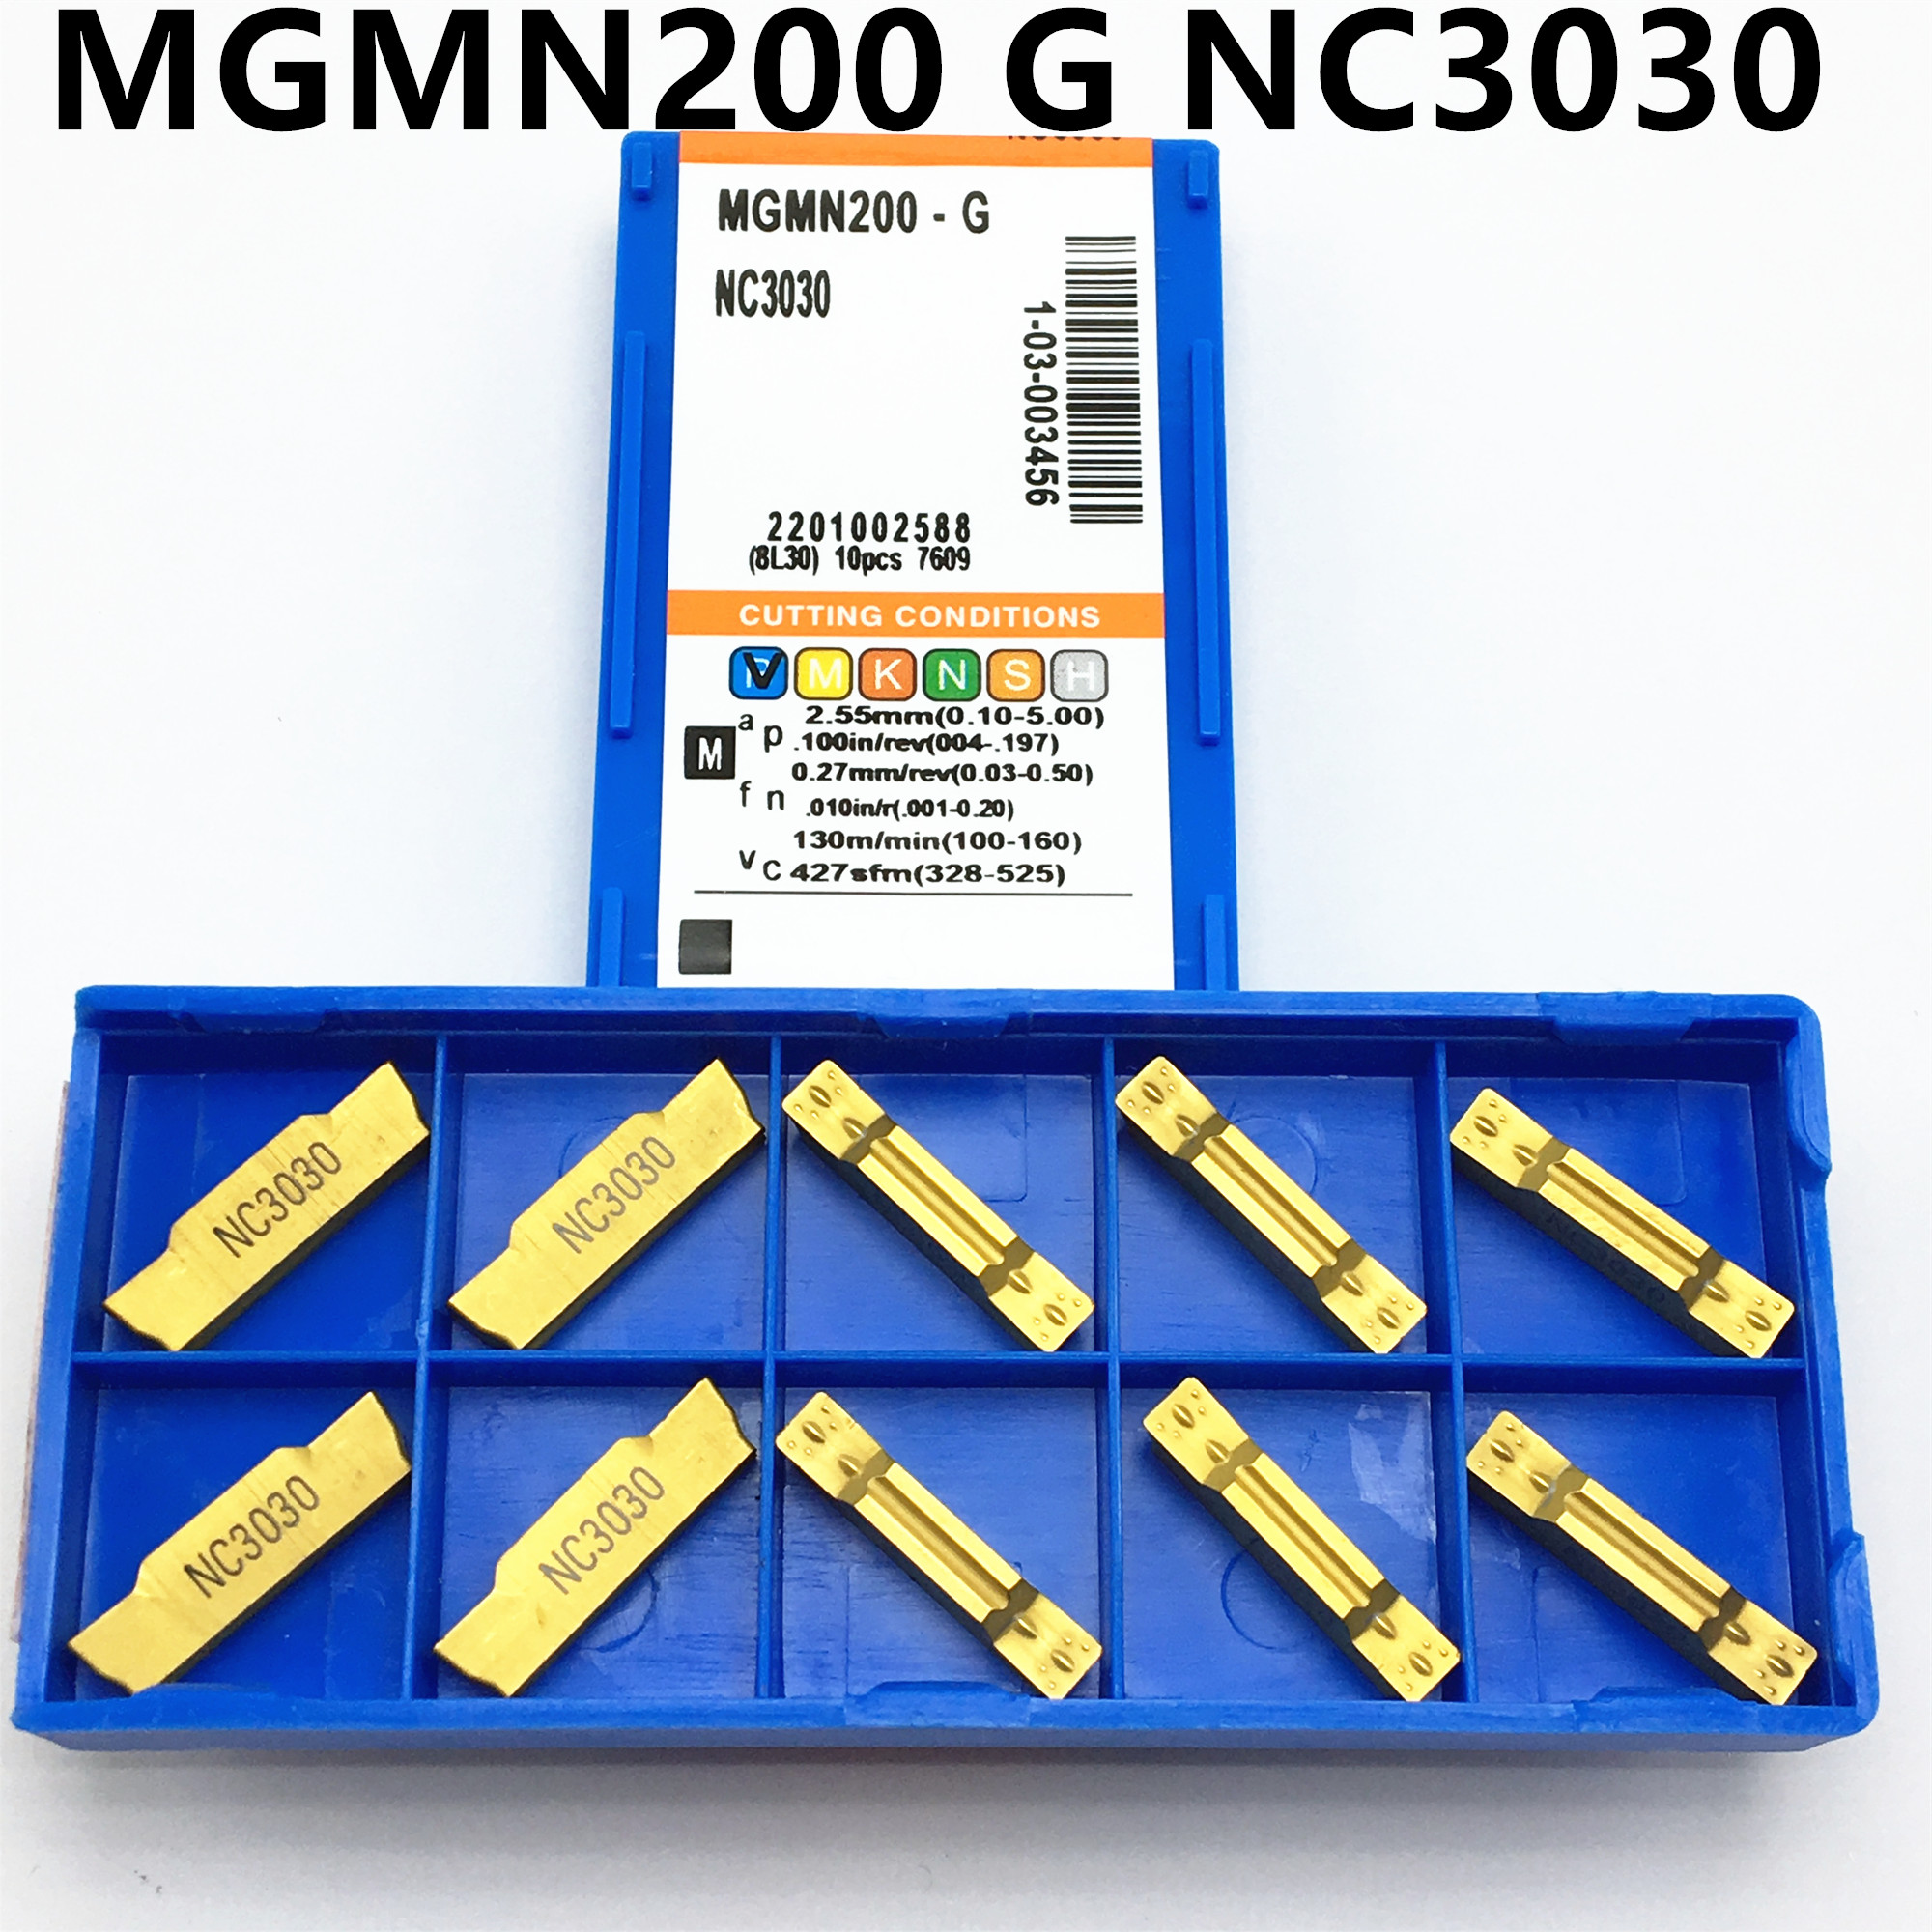 10p MGMN200-G NC3030 CNC grooving carbide inserts machine tool coated with PVD